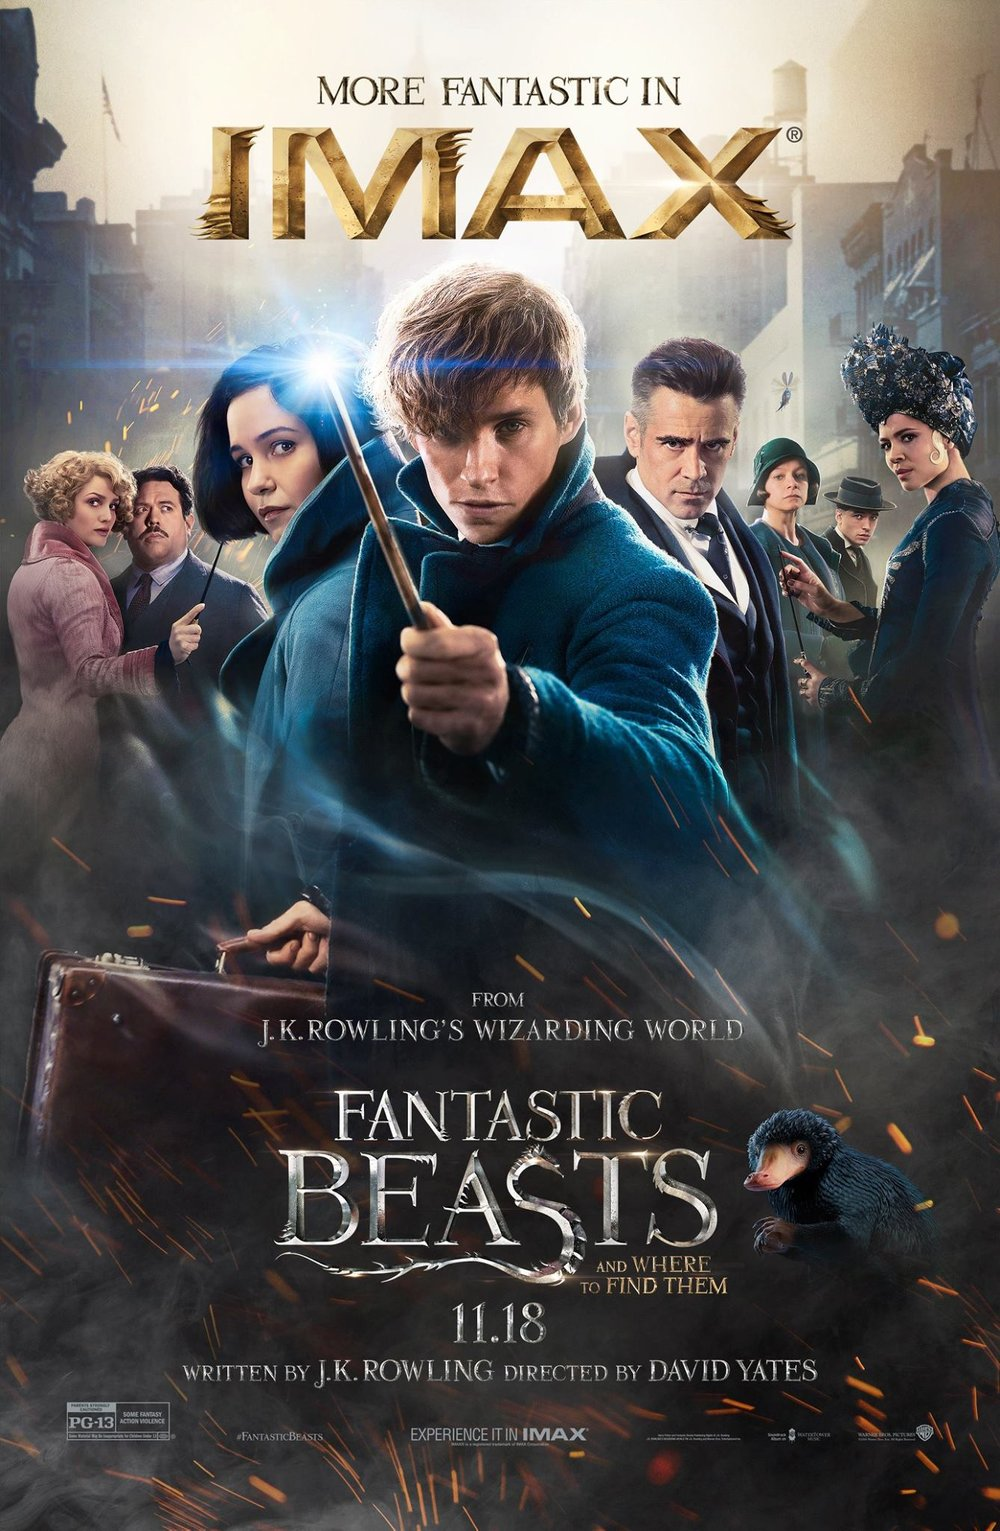 Fantastic Beasts And Where To Find Them 2 Movie Review